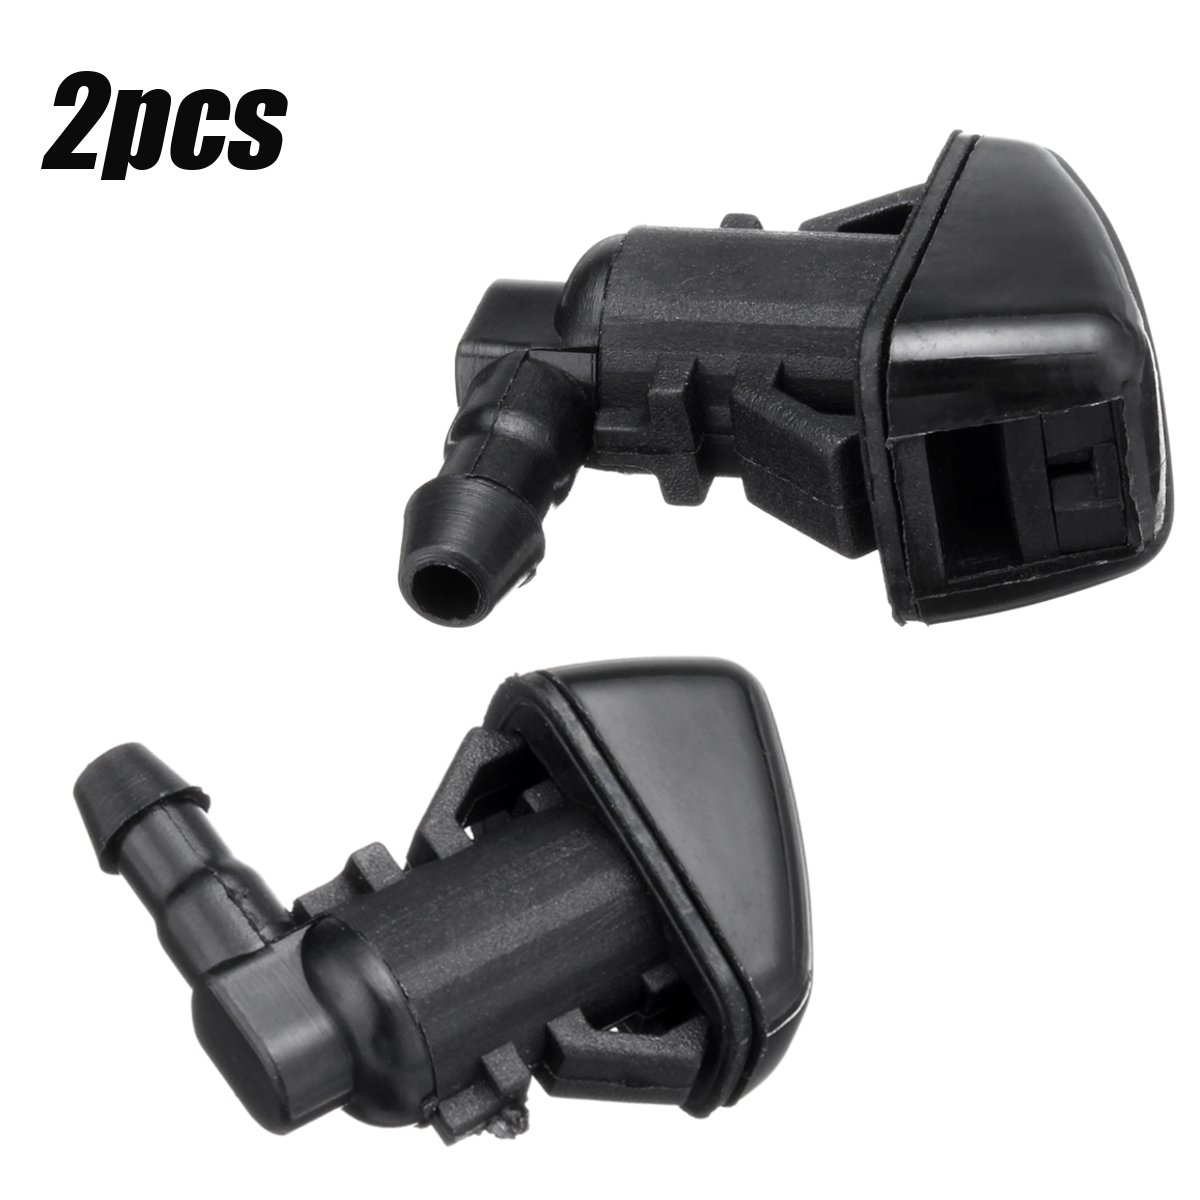 #7C3Z17603A Car Windshield Washer Spray Nozzle Jet Fan Shaped Water Spray For Ford F250 F350 F450 F550  2008 2009 2010 1/2PCS